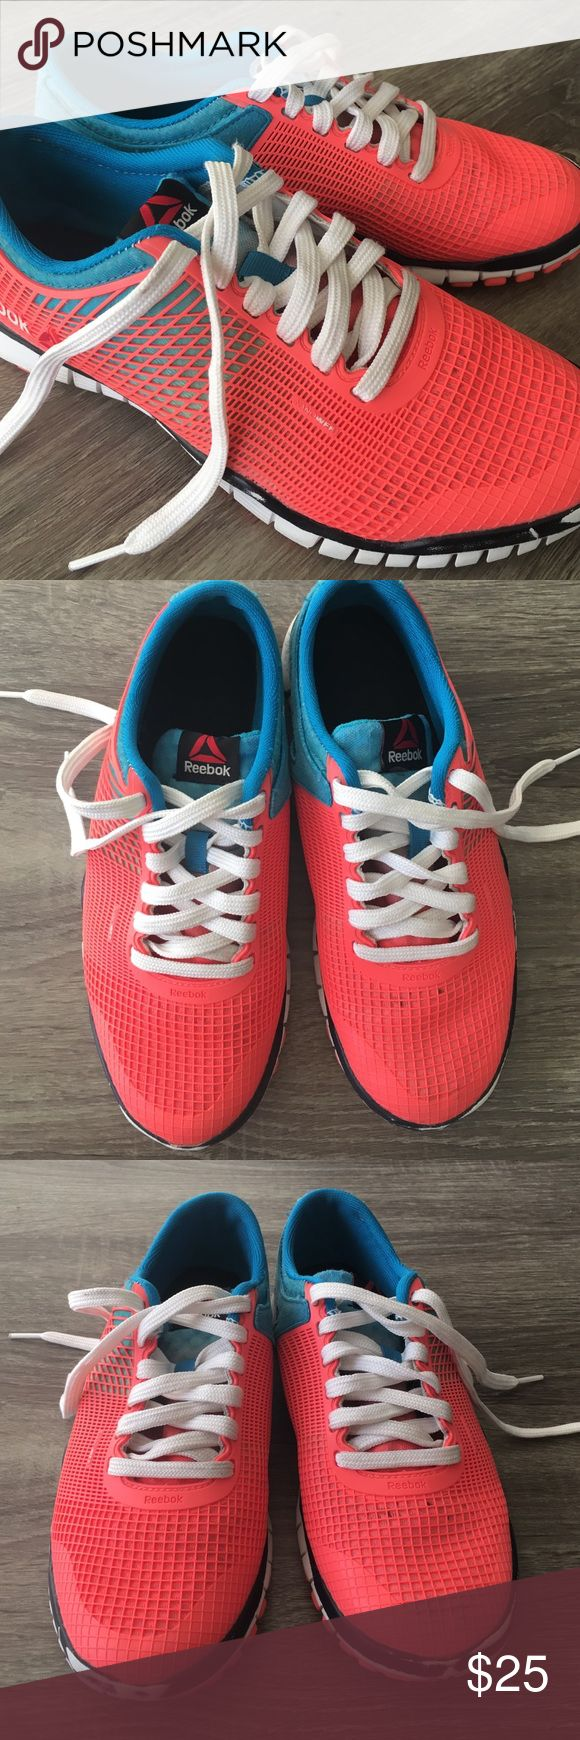 ‼️SALE‼️ Reebok cross-training Tennis Shoes 7.5 Worn a couple times, rub marks on front (see photo!) are from rope climbing one time. Plenty of life left! These are flat like the crossfit shoes, perfect for weight-lifting. Sz 7.5, TTS Reebok Shoes Athletic Shoes